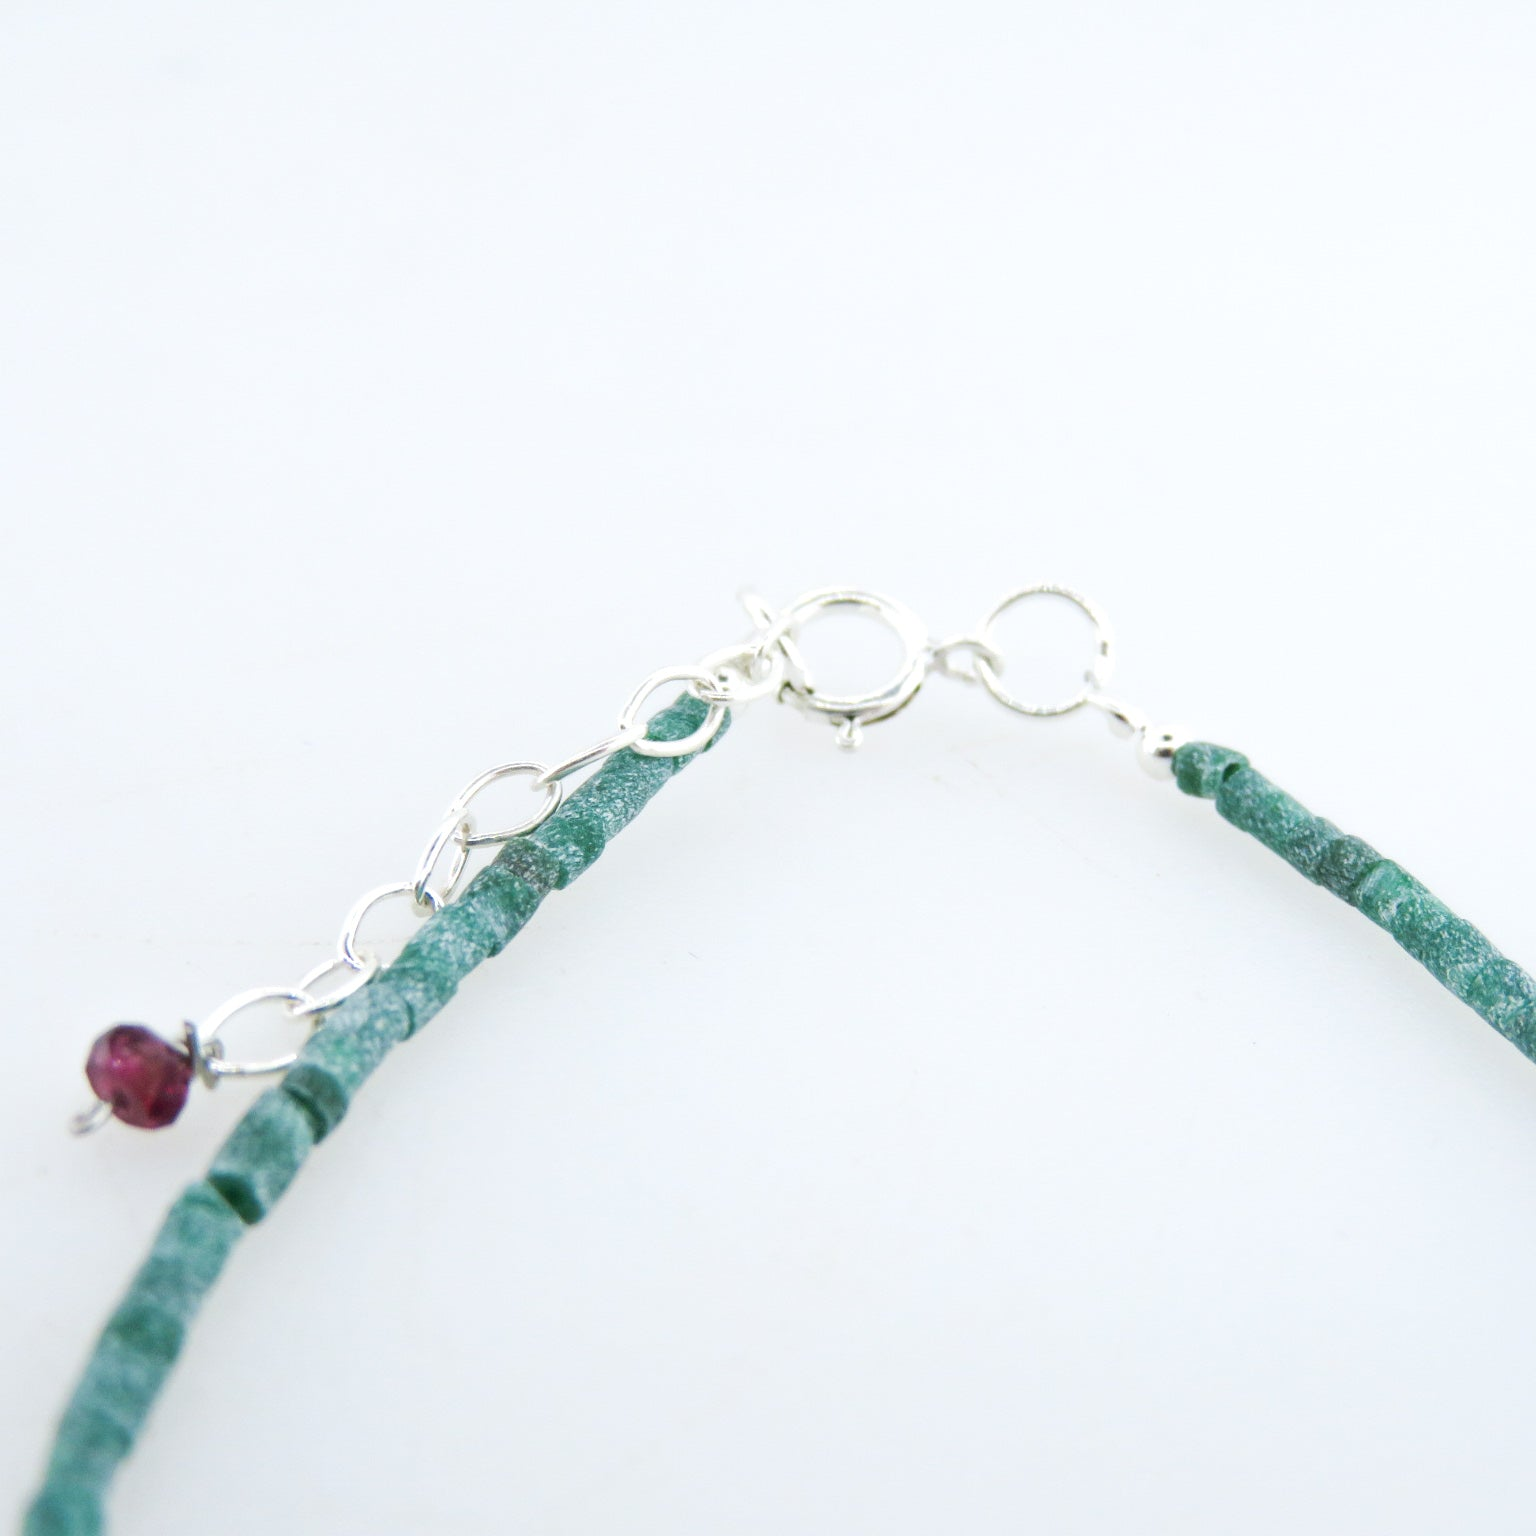 Emerald Bracelet with Blue Sapphire, Garnet and Silver Beads